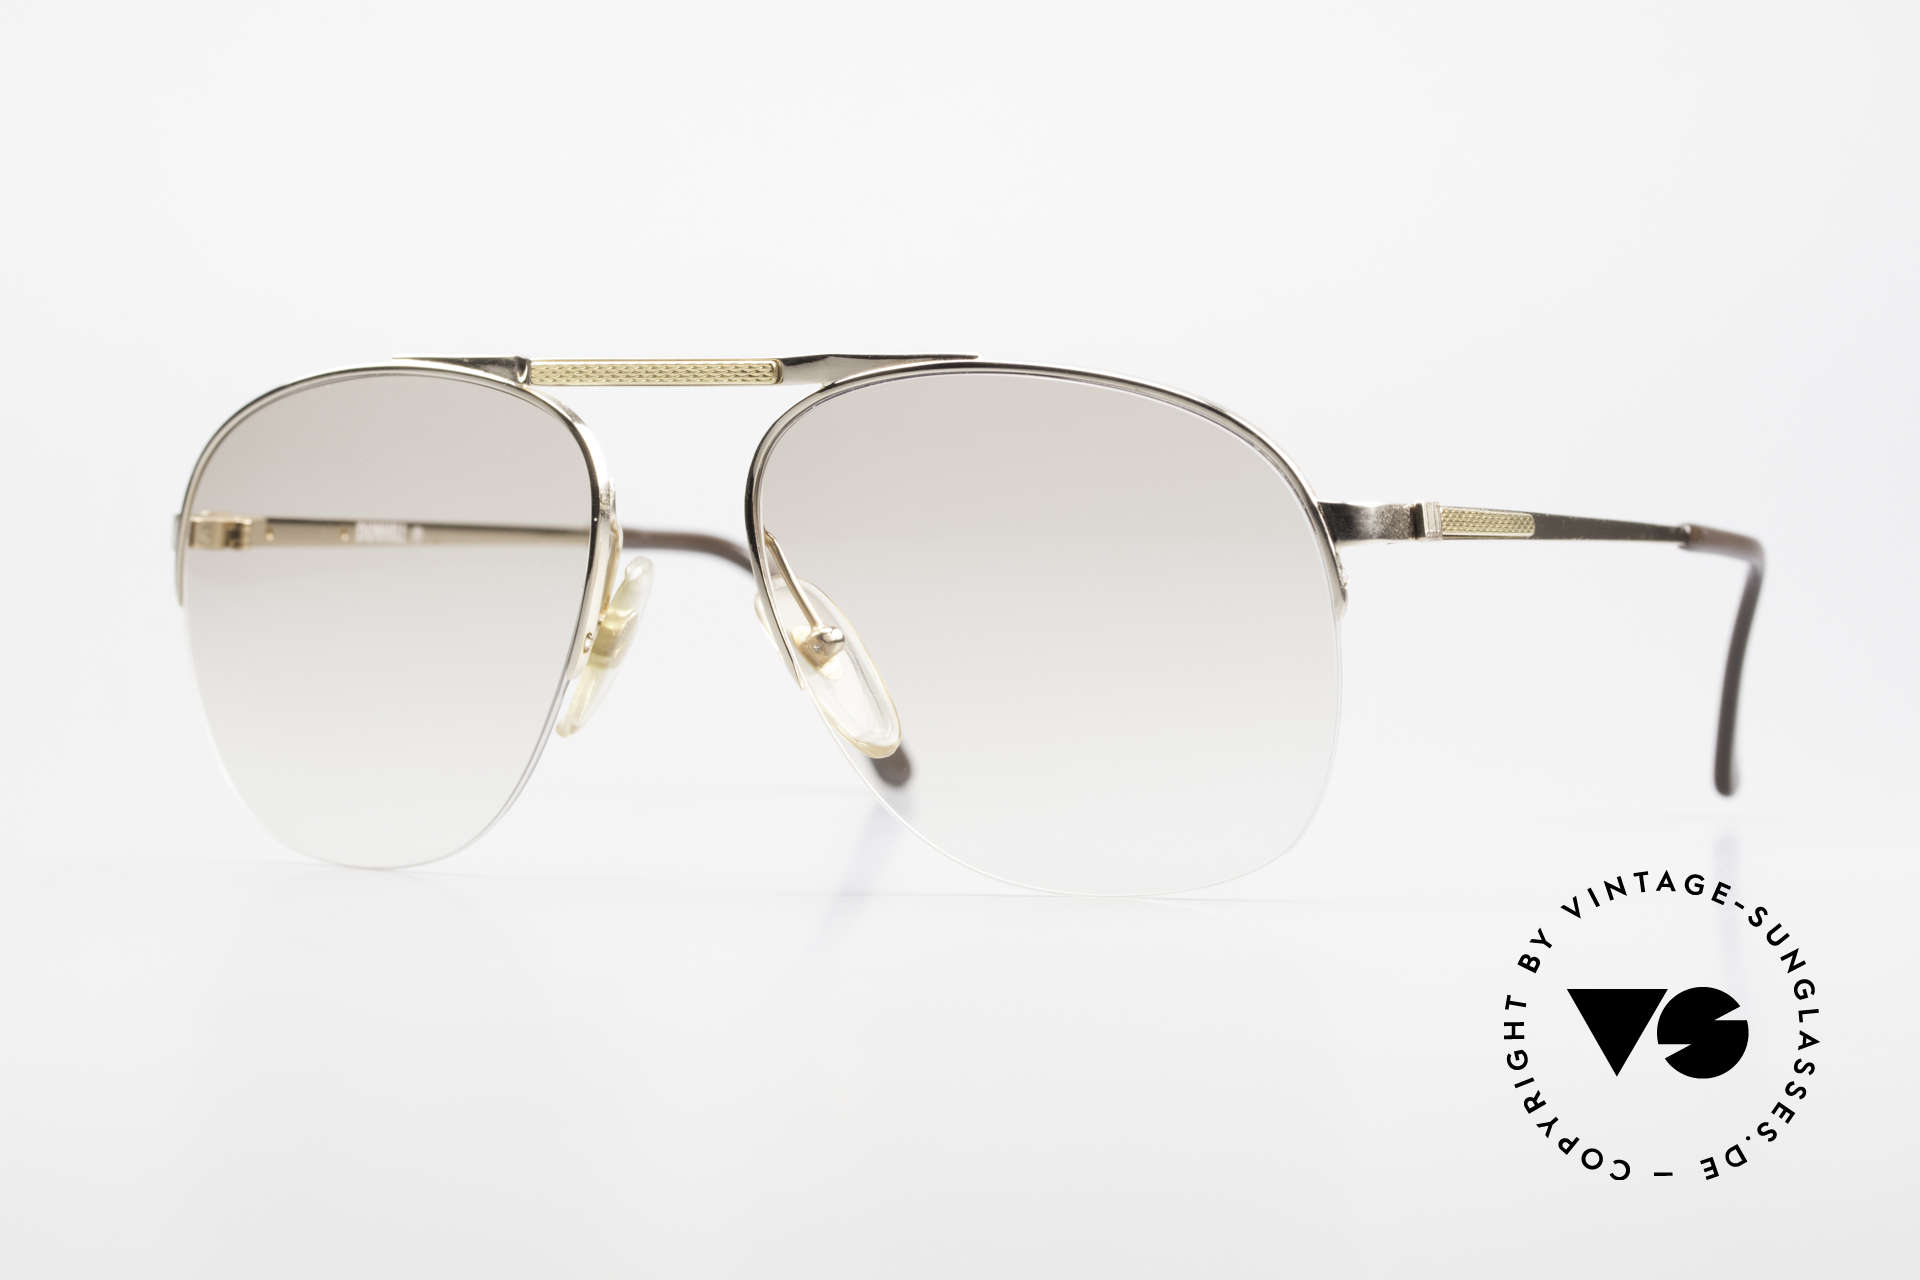 Dunhill 6022 Rare 80's Gentlemen's Frame, ALFRED DUNHILL = synonymous with English style, Made for Men